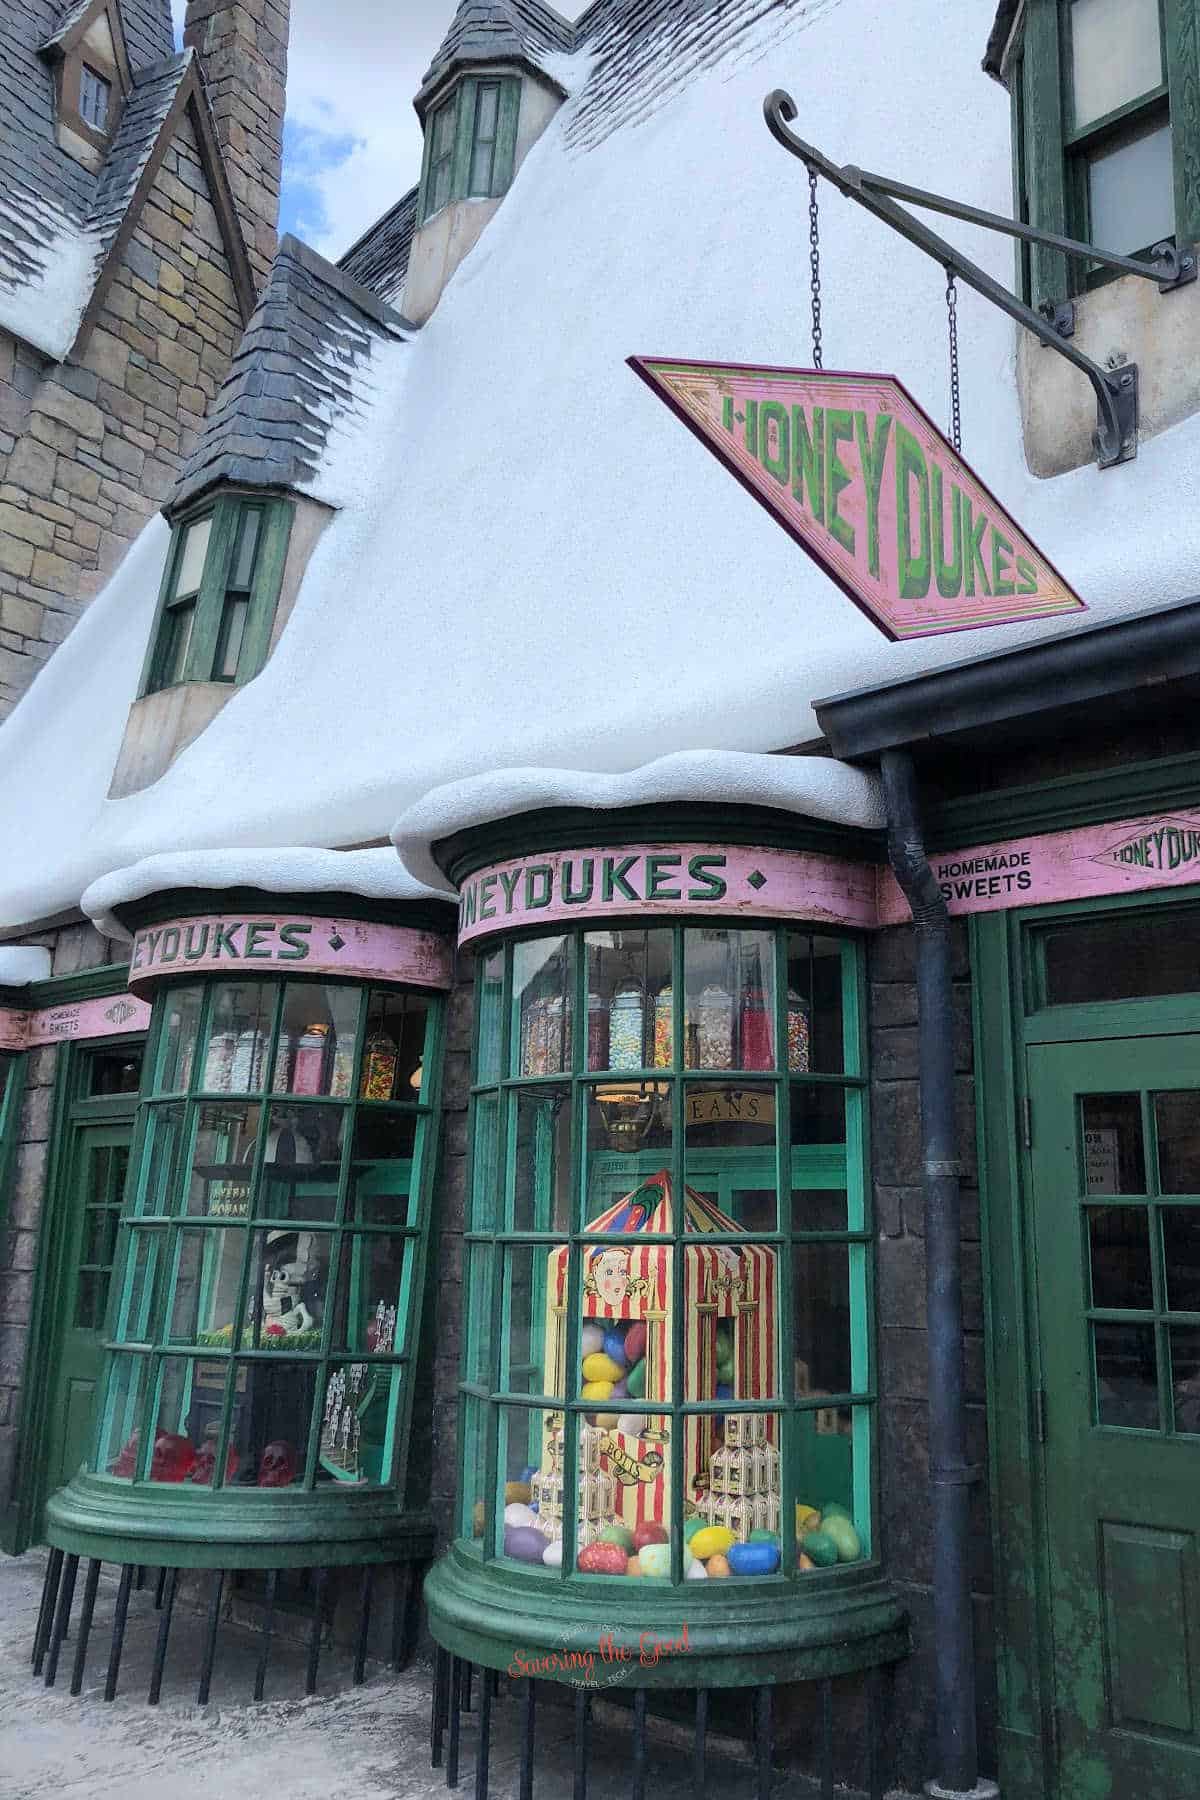 store front of honey dukes candy shop in universal orlando